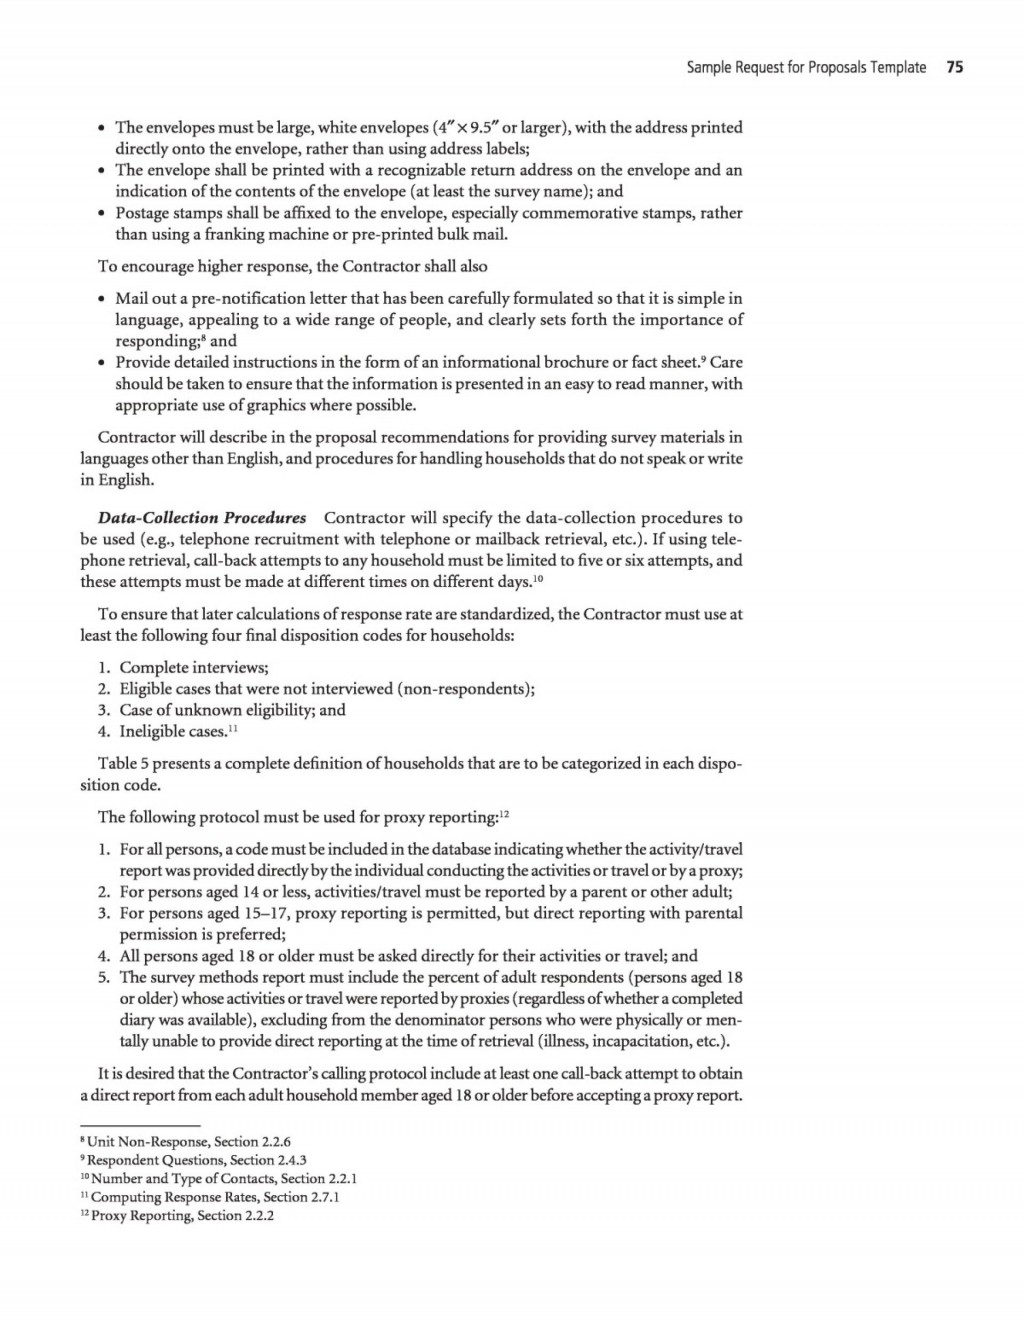 008 Unforgettable Request For Proposal Response Word Template Sample Large